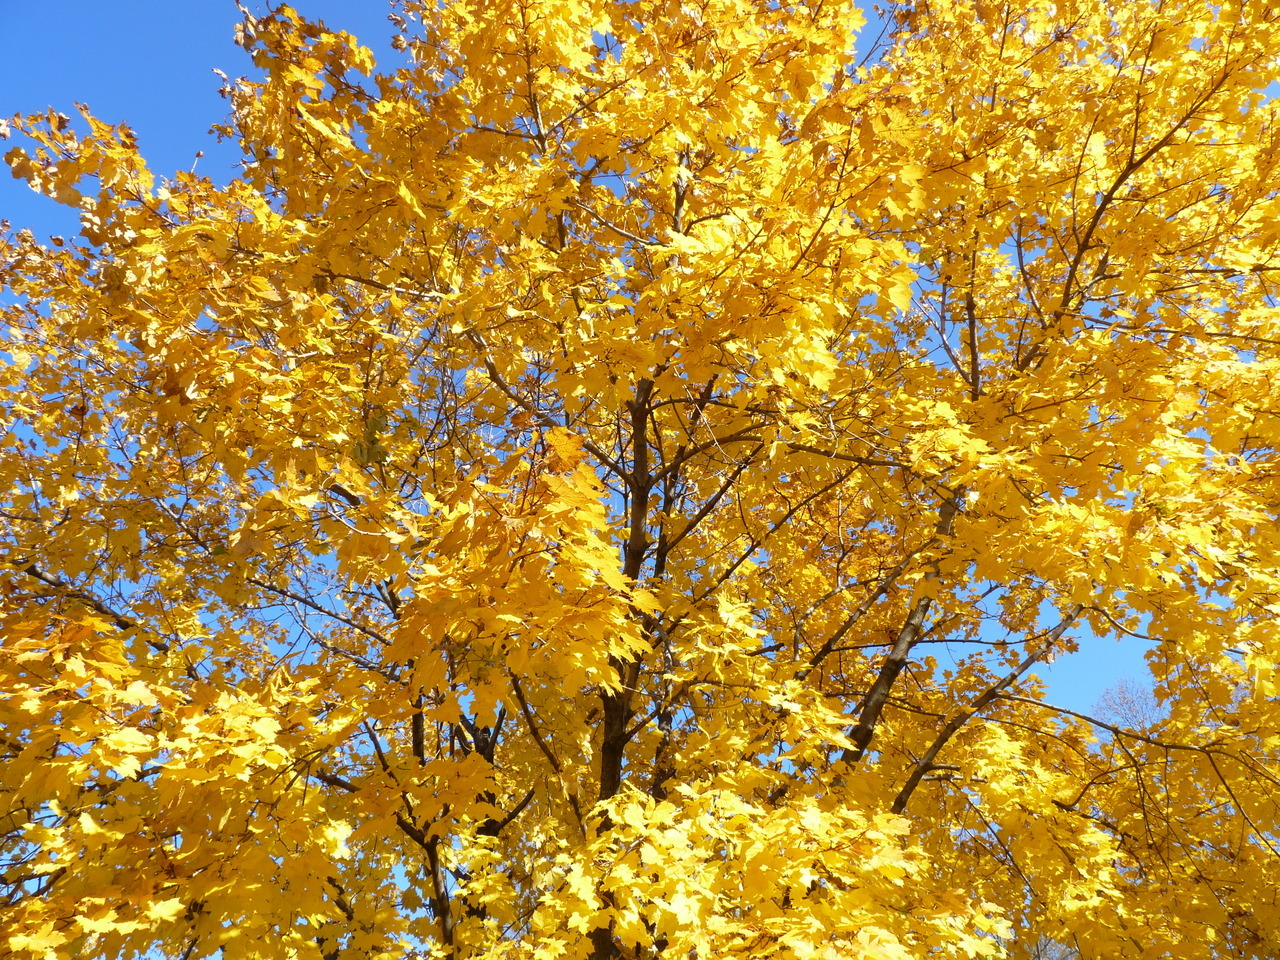 The maple tree in our front yard, showing off its glorious fall color.